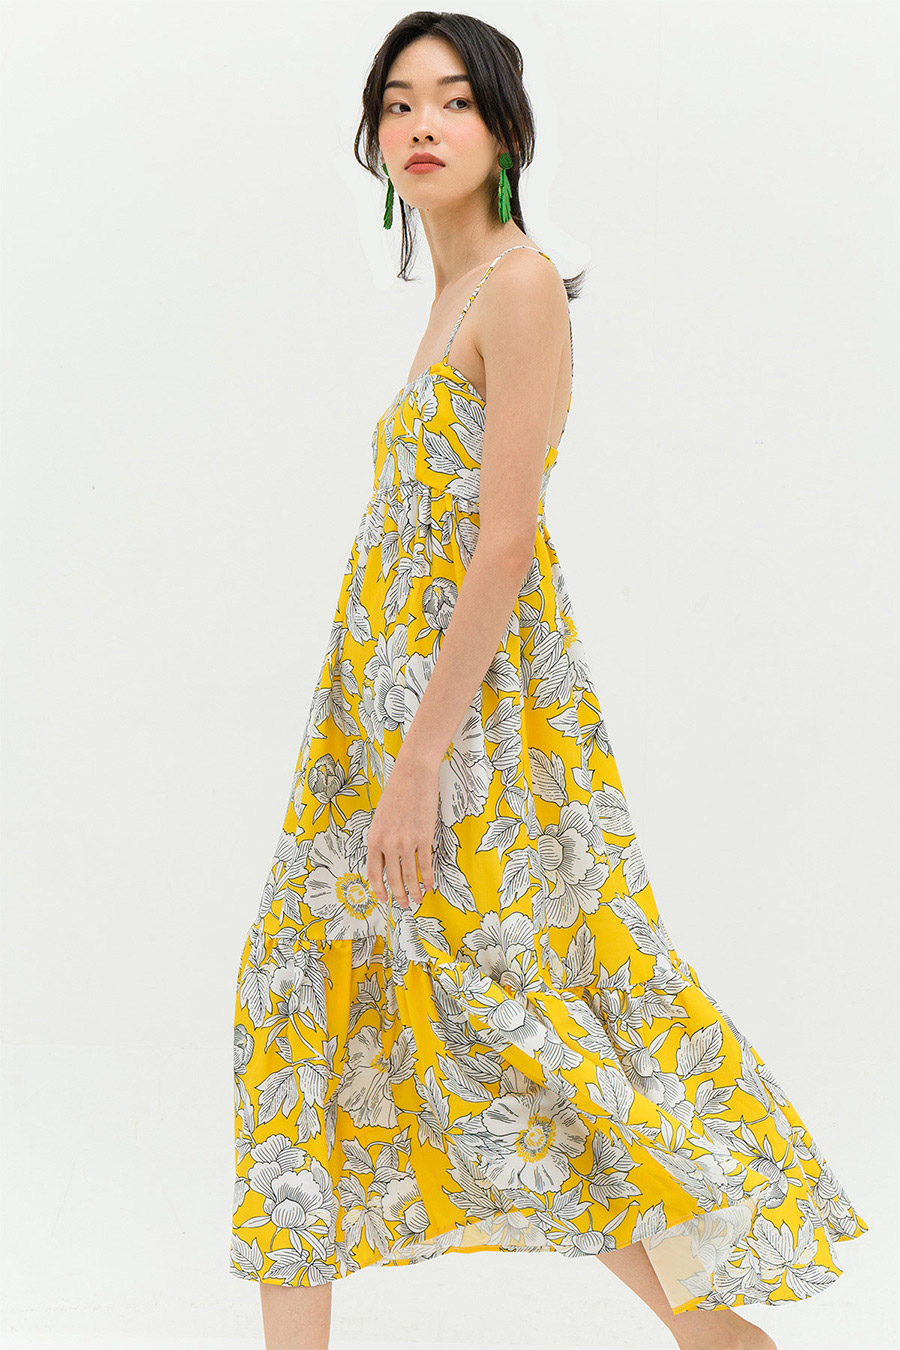 *RESTOCKED* LAJOIE DRESS - SUNRISE